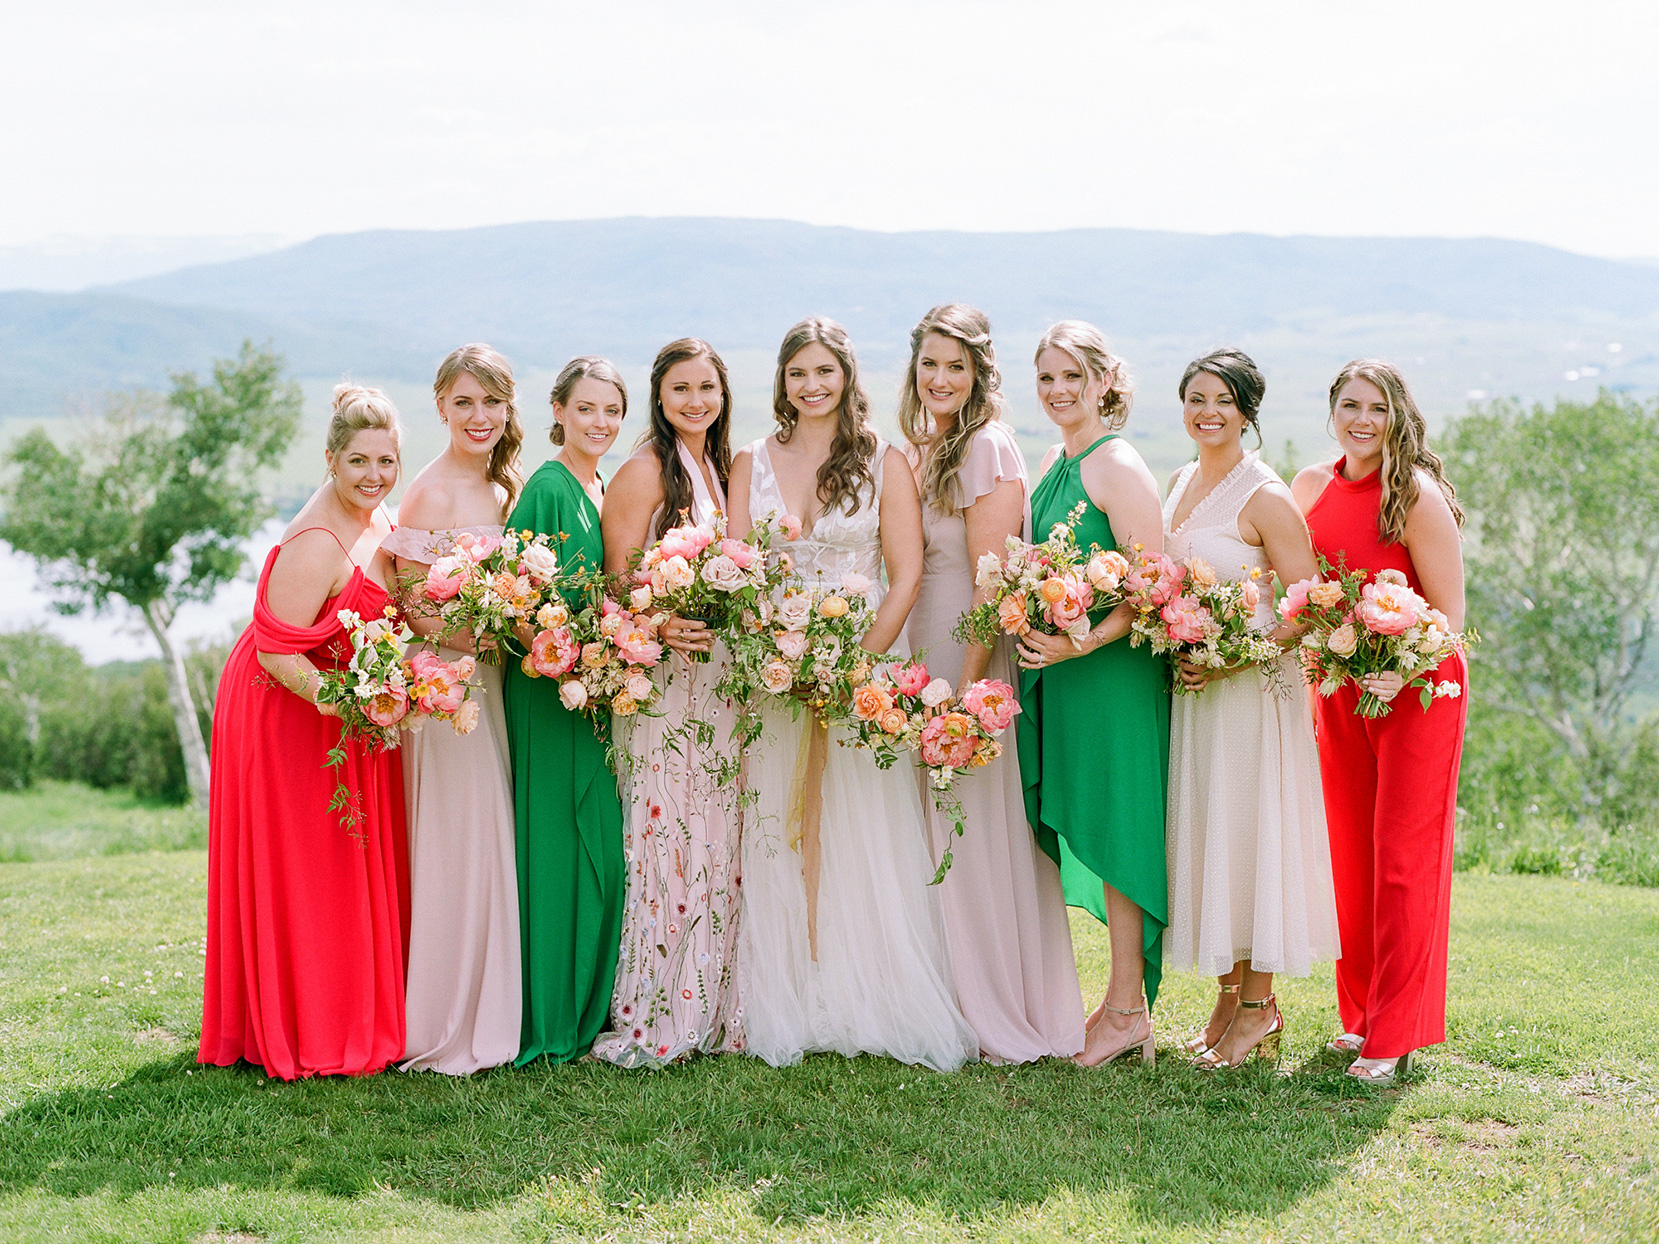 logan conor wedding bridesmaids in bright red, green and blush